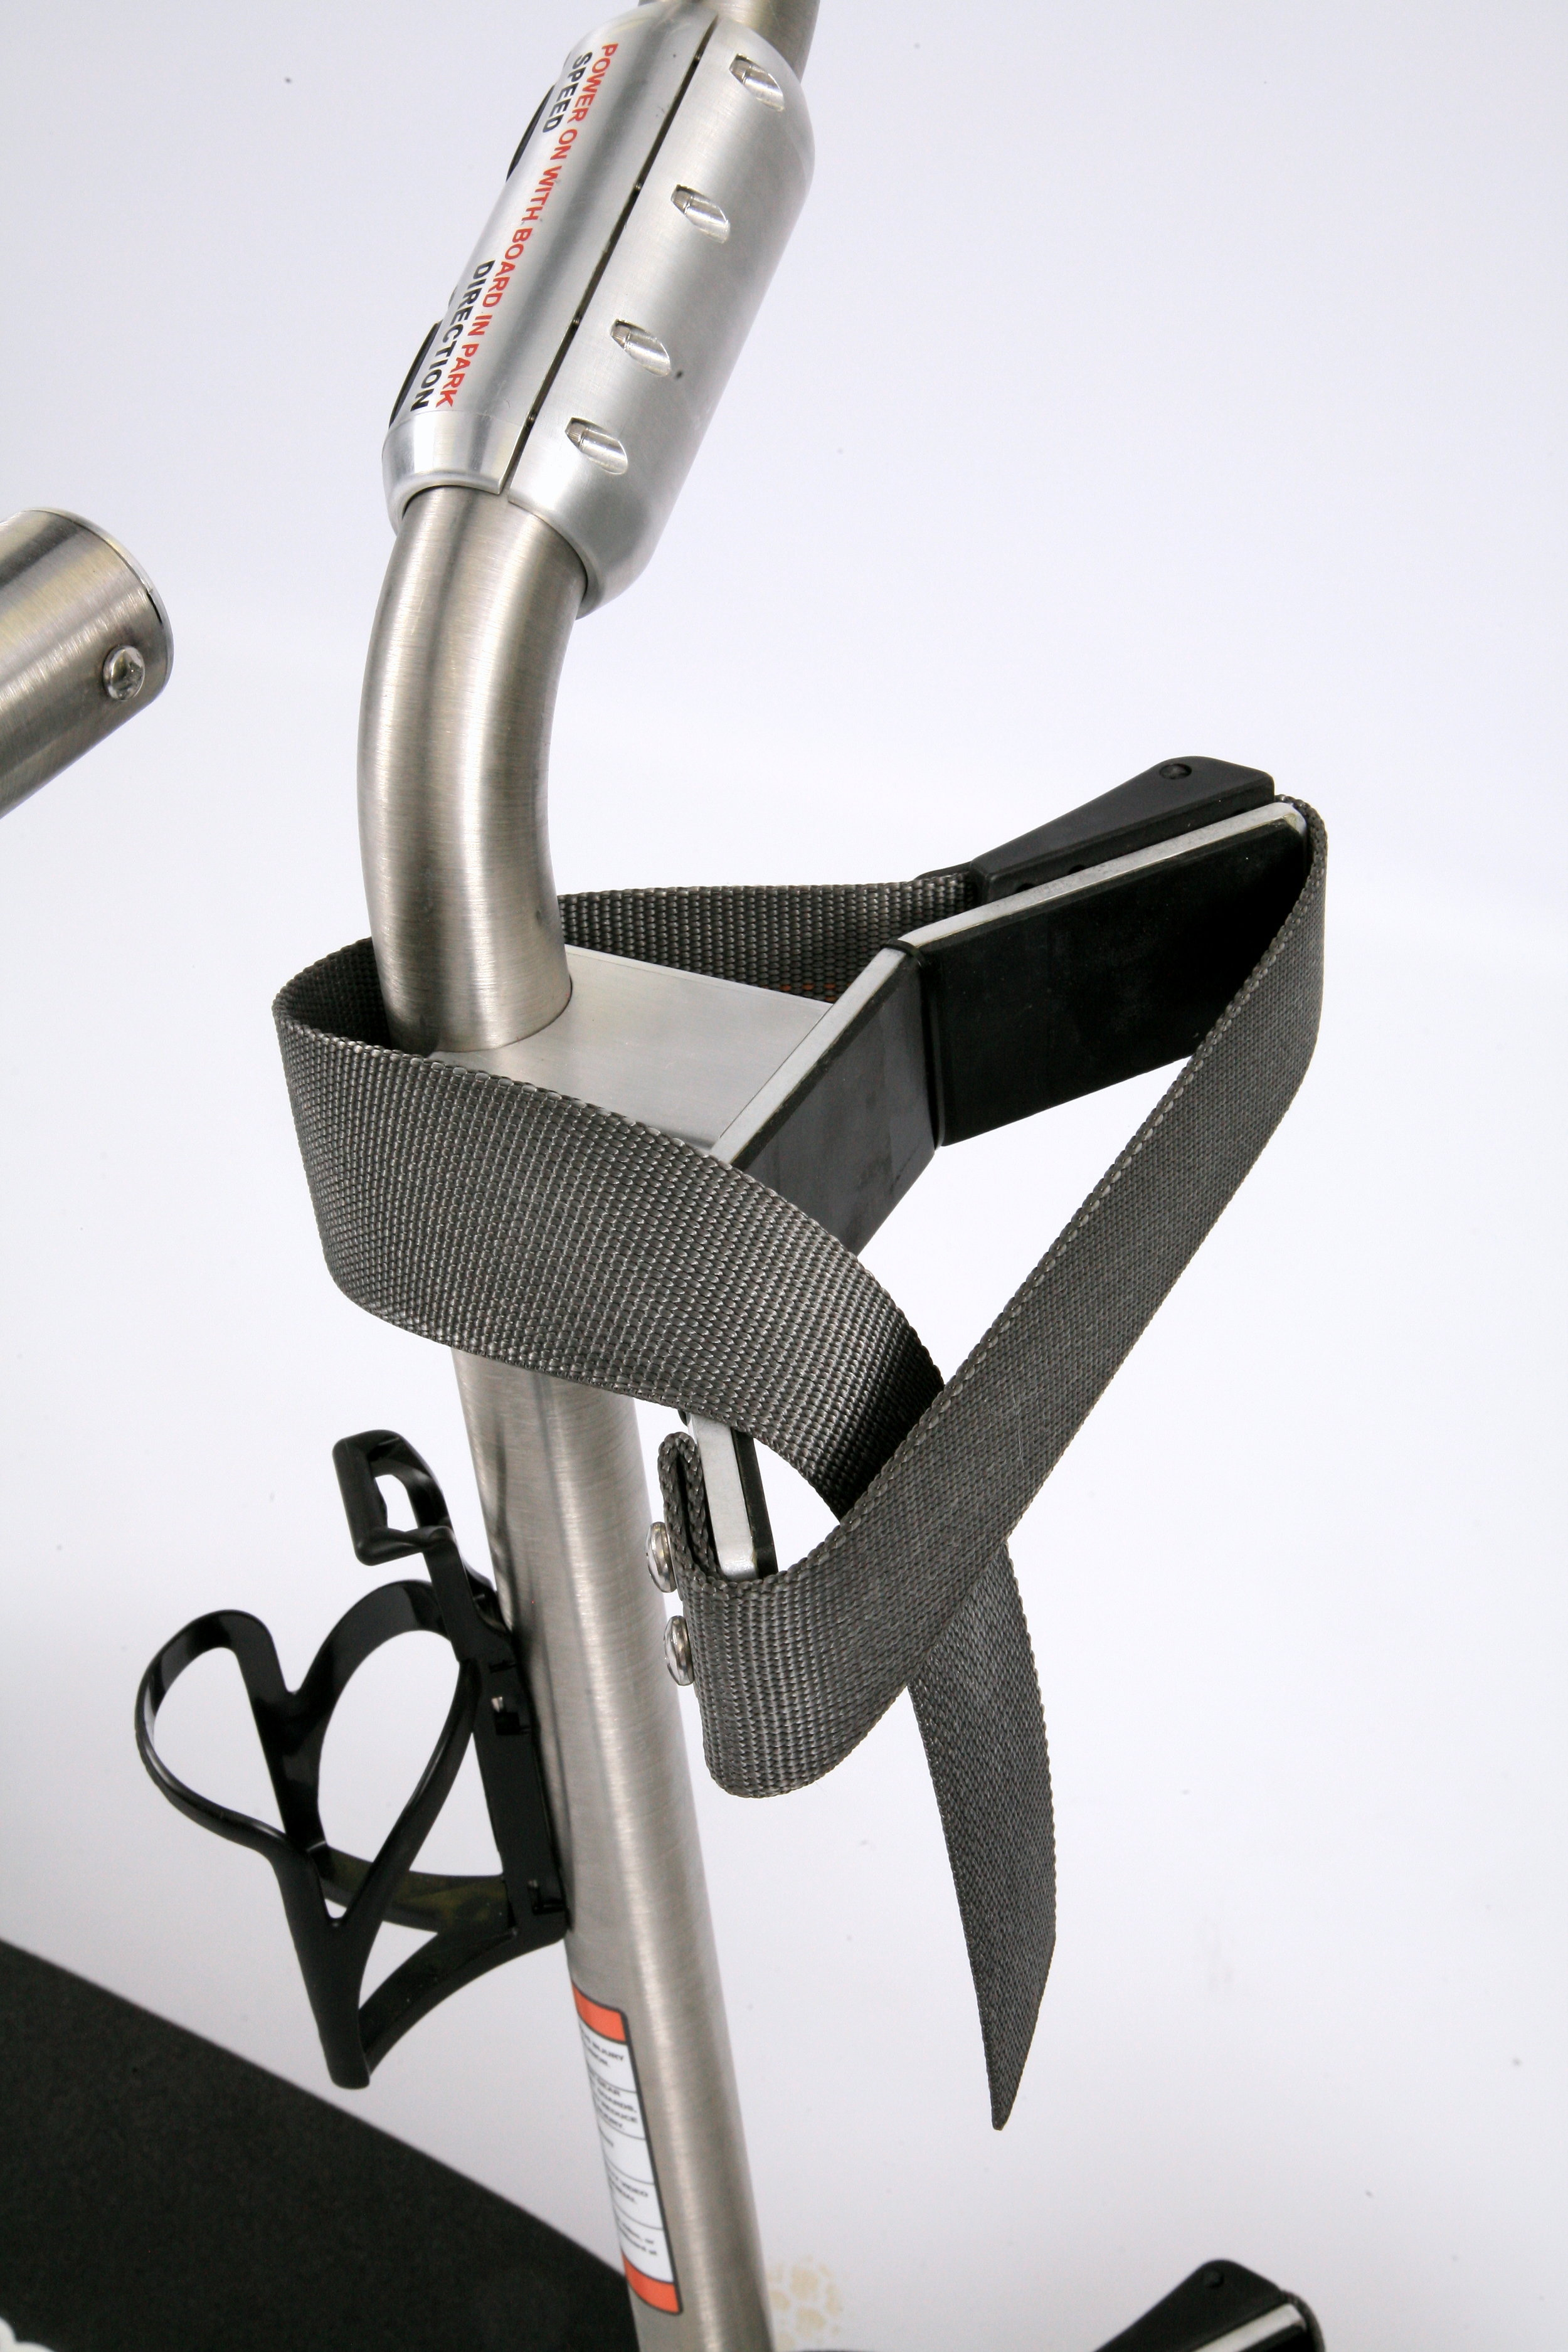 Adjustable bag straps with easy use clamping system